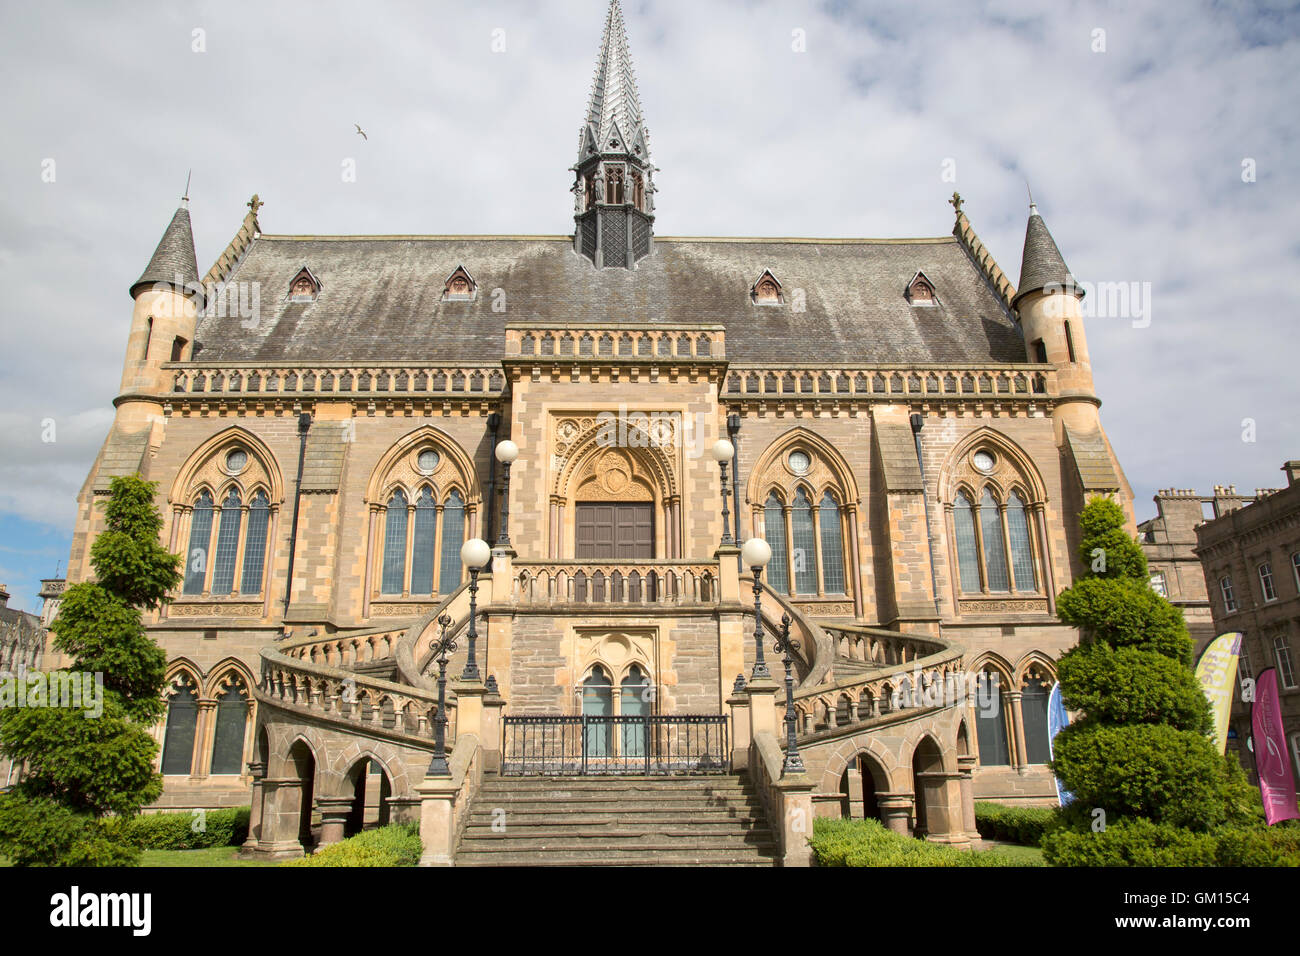 The McManus Art Gallery and Museum, Dundee, Scotland; UK - Stock Image